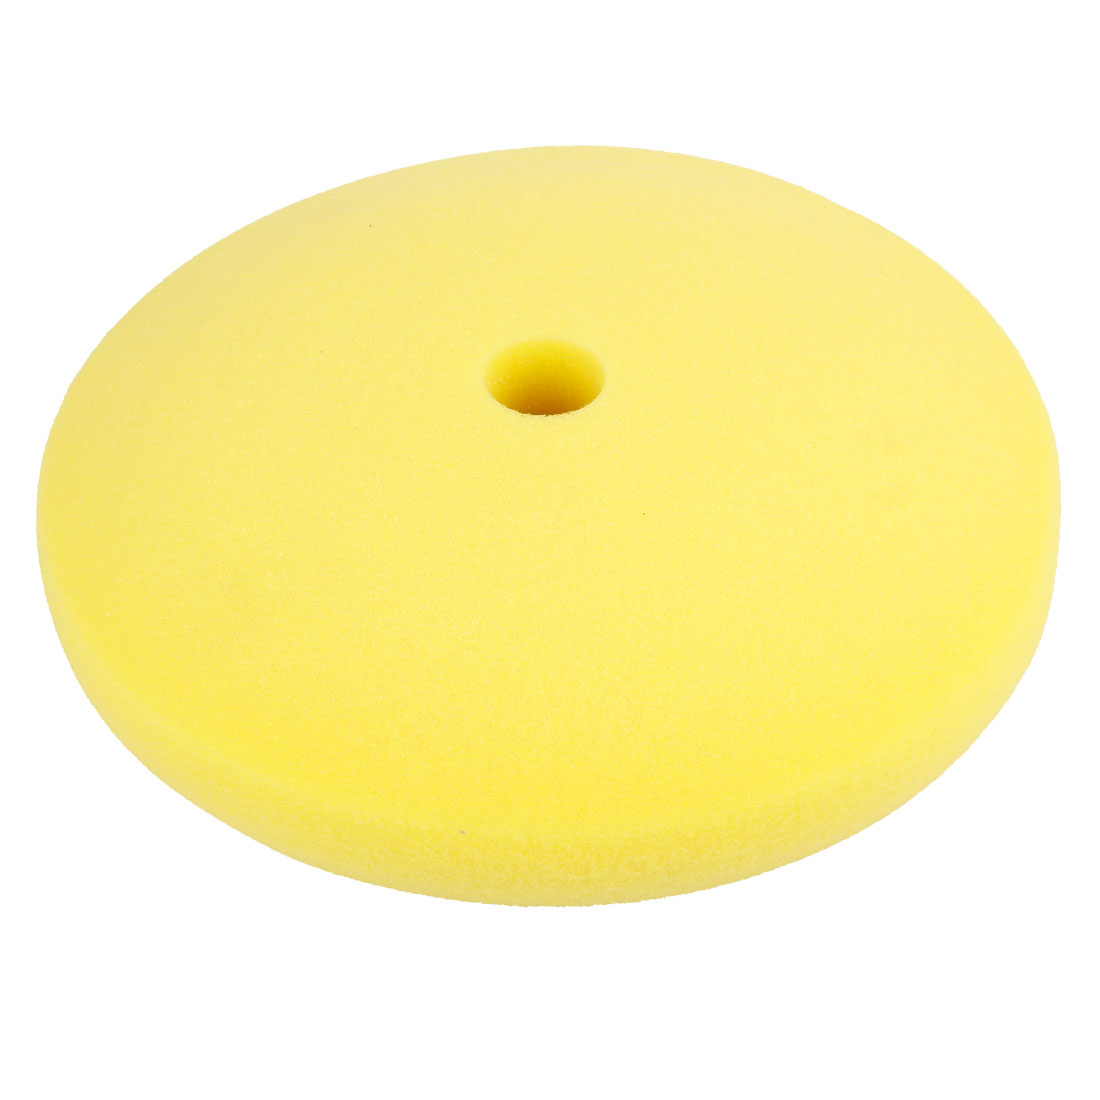 Car Detailing Polishing Yellow Sponge Mop Pad Polisher Cleaning Tool 24cm